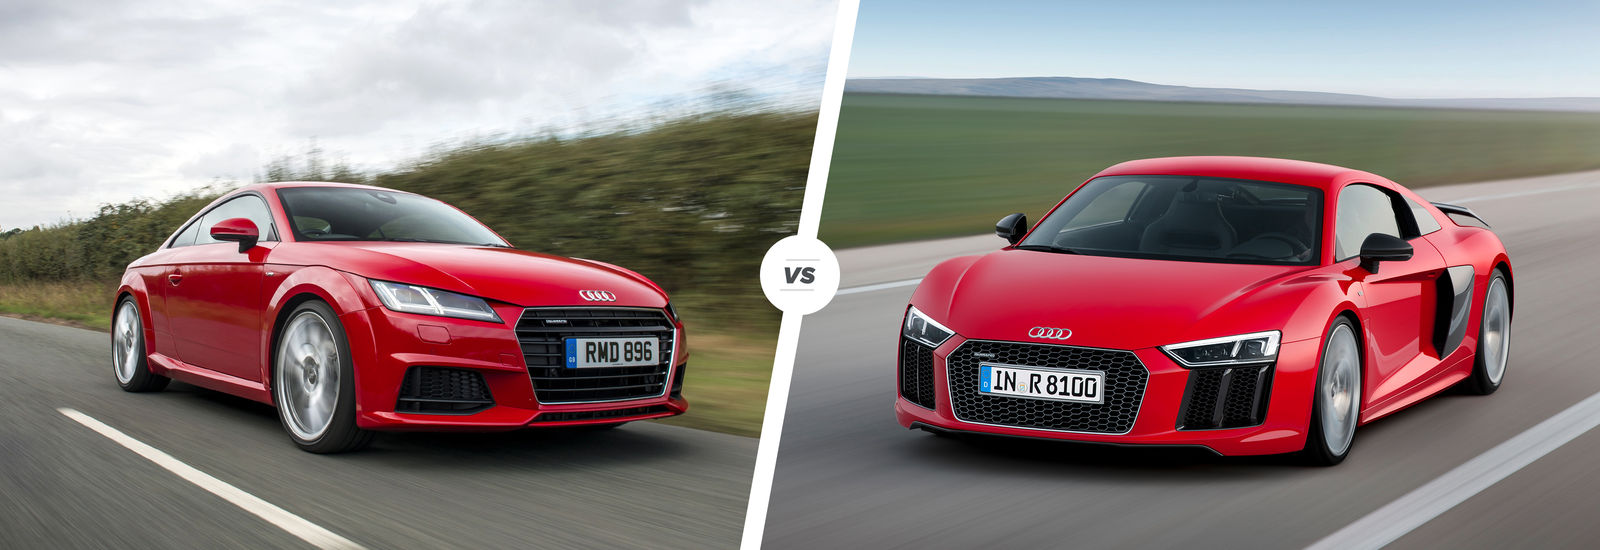 2015 audi r8 tt and old r8 comparison carwow. Black Bedroom Furniture Sets. Home Design Ideas